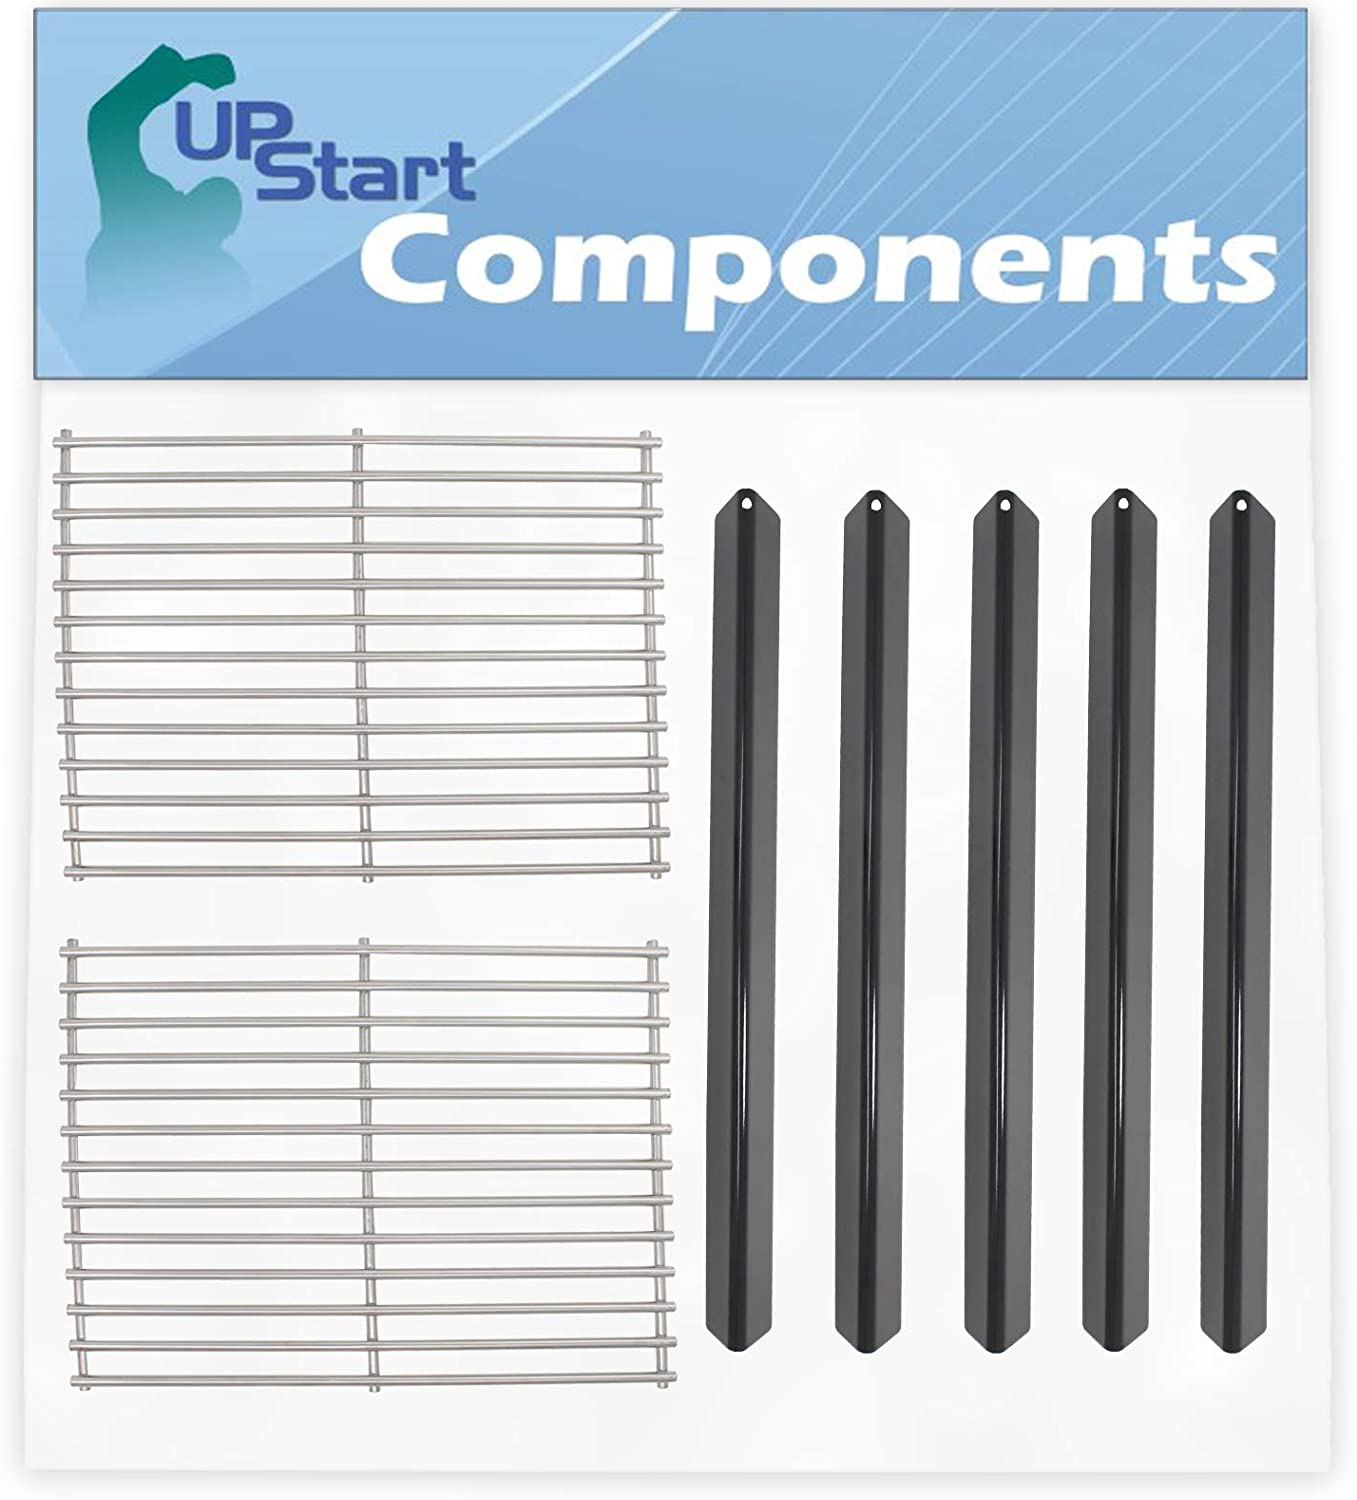 """5 BBQ Grill Heat Shield Plate Tent & 2 Cooking Grates Replacement Parts for Weber GENESIS SILVER A NG W/CAST IRON GRATES (2000-2001) - Stainless Steel Grid 15"""" & Porcelain Steel Flavorizer Bar 21.5"""""""